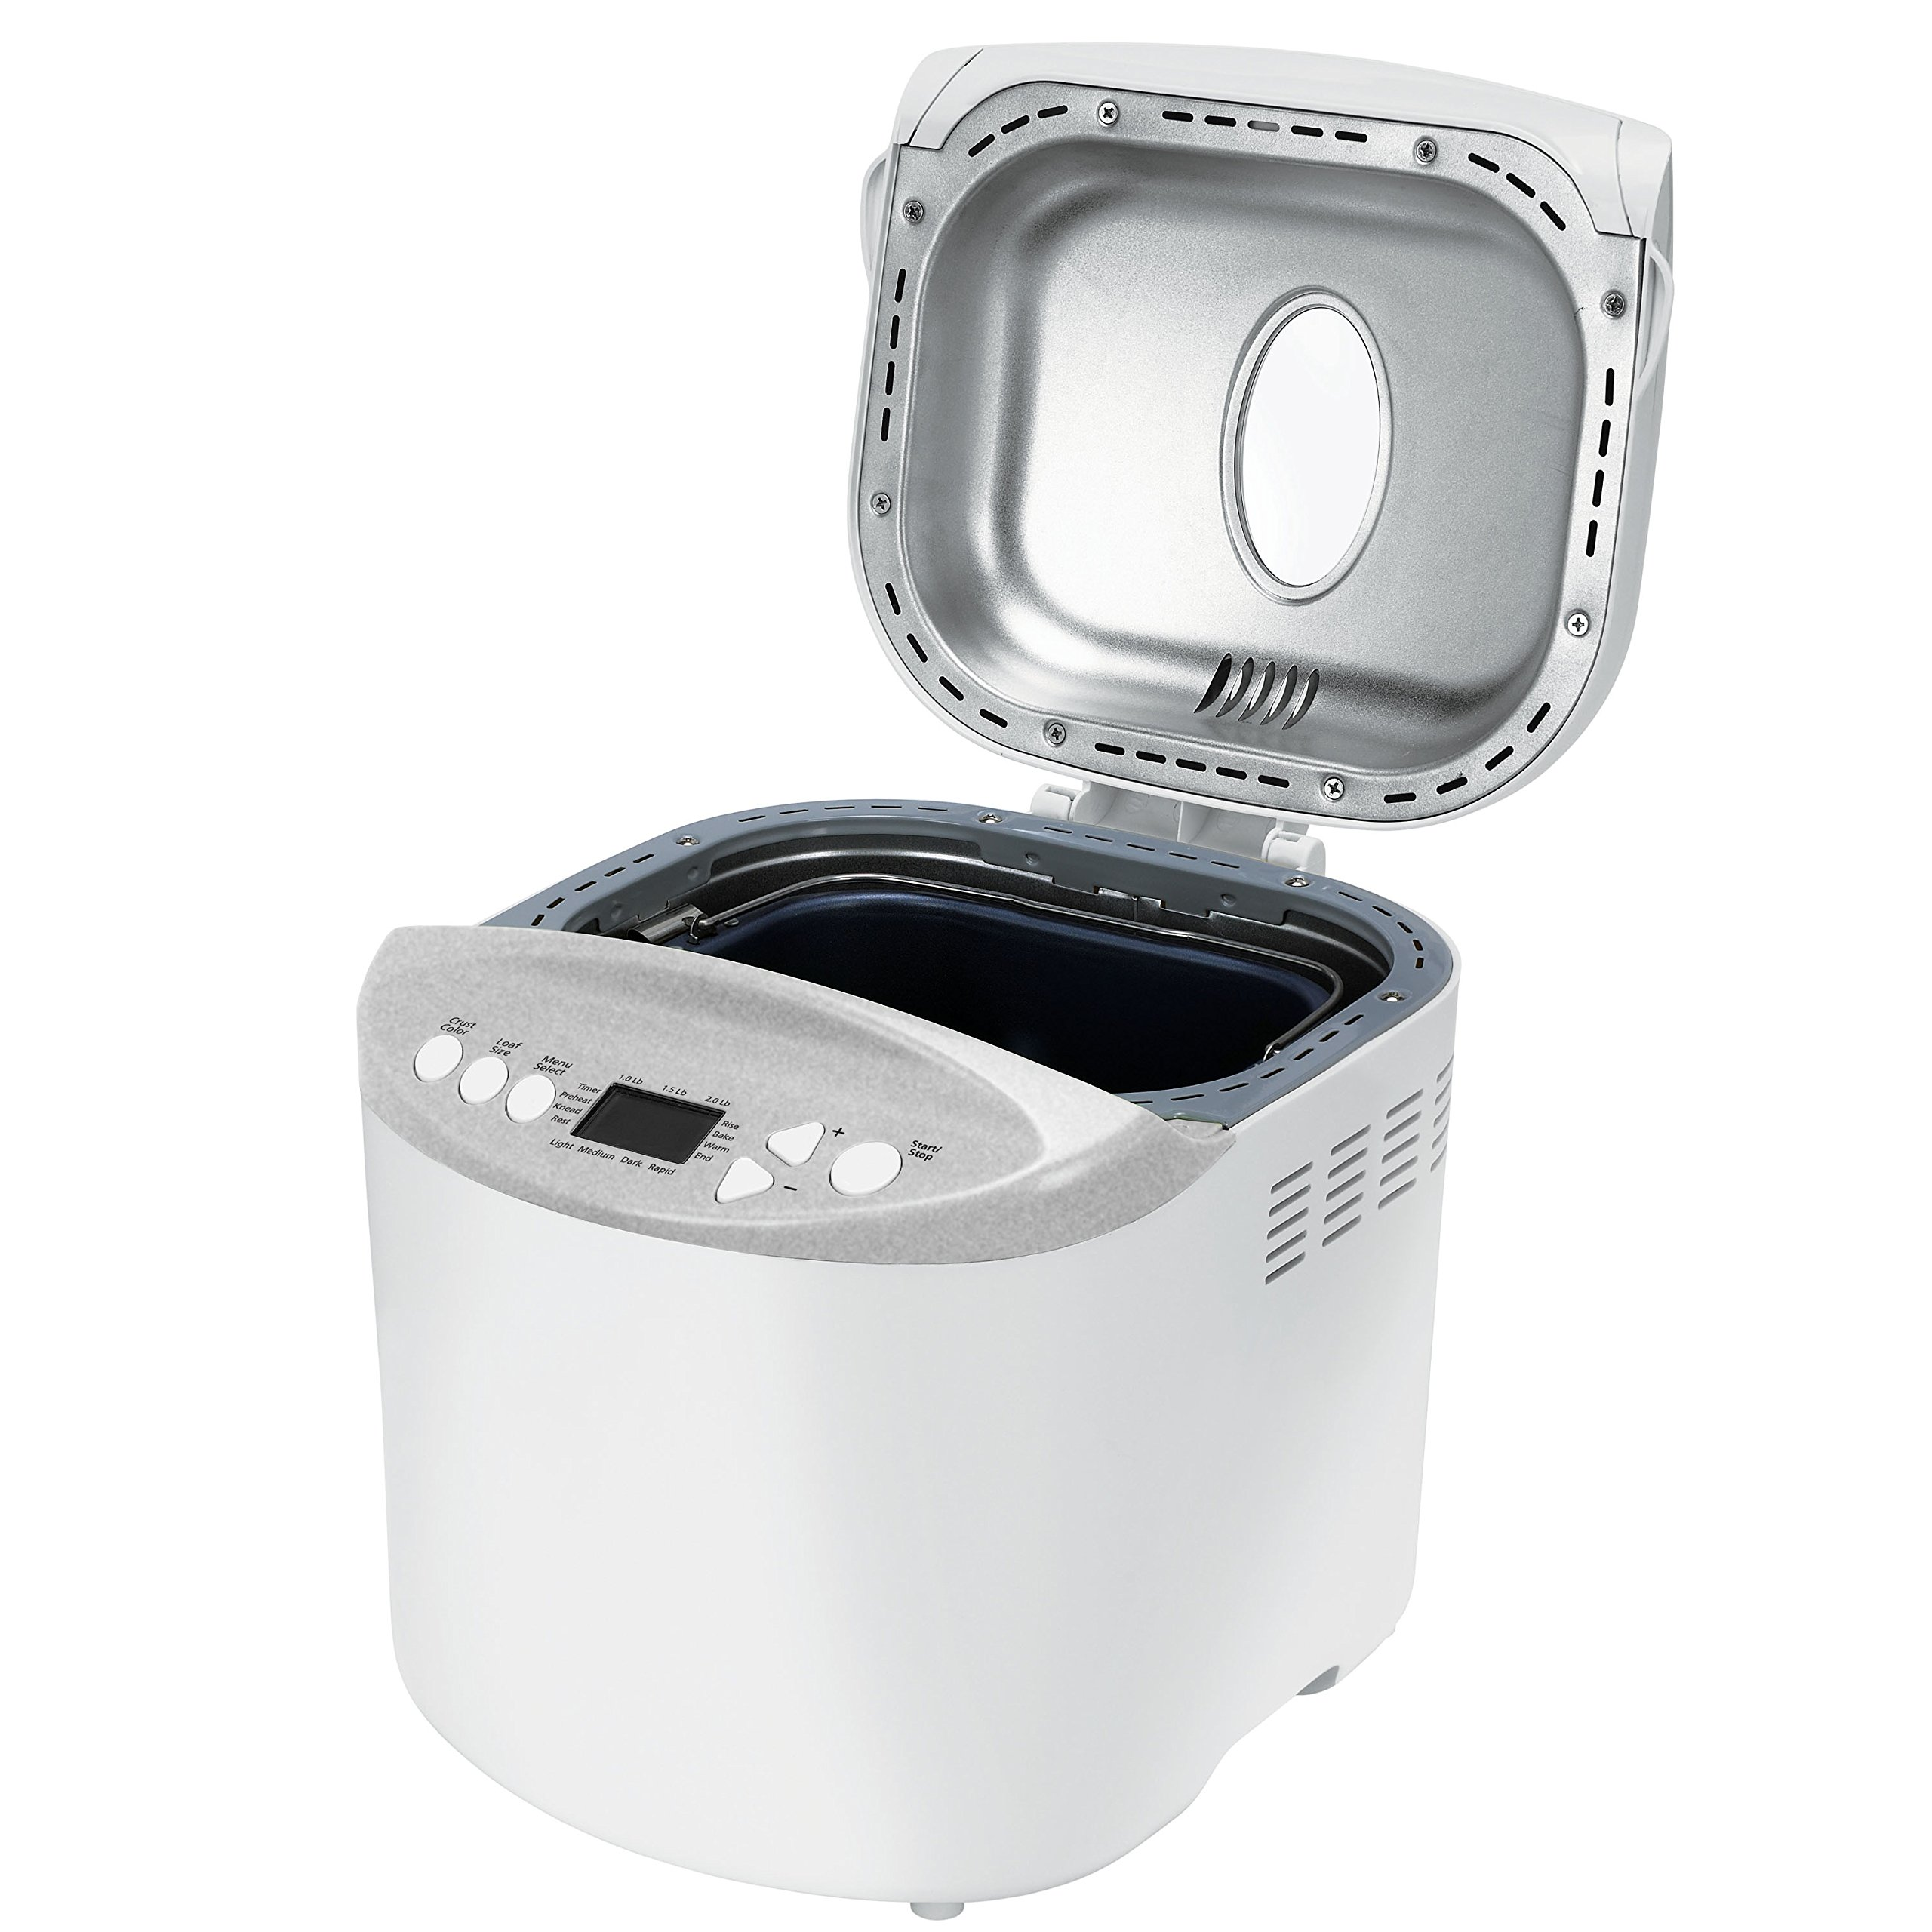 Oster Expressbake Bread Maker with Gluten-Free Setting, 2 Pound, White (CKSTBR9050-NP) by Oster (Image #2)